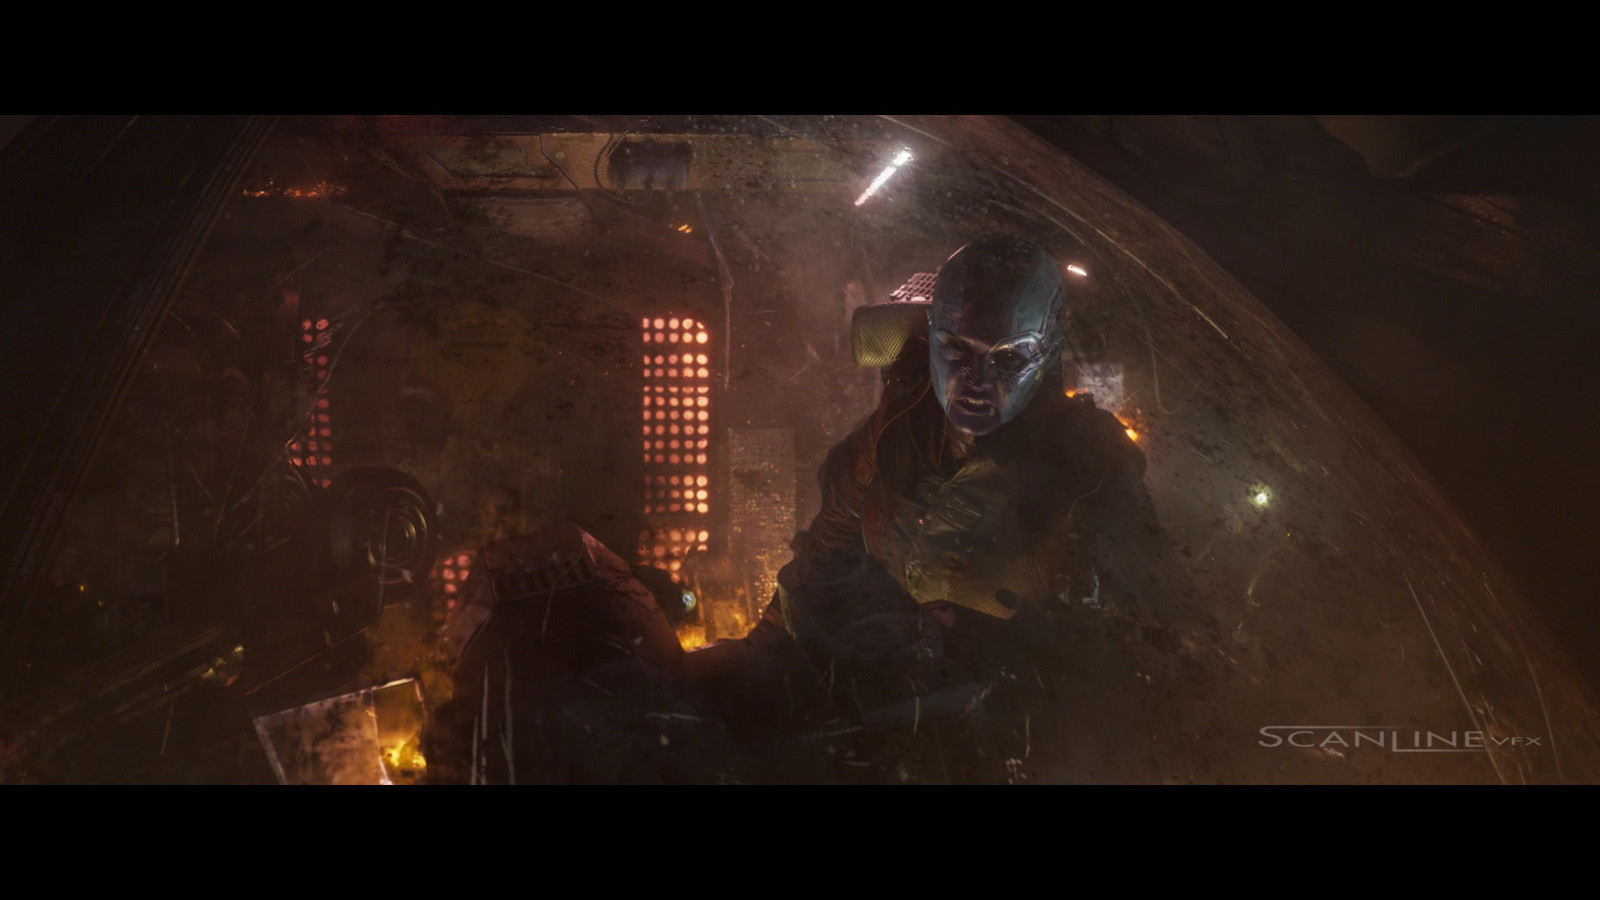 Compositing and integration work  for Guardians of the Galaxy vol. 2 - Work done at Scanline VFX with a team of 3D artists.  Software used: Nuke.